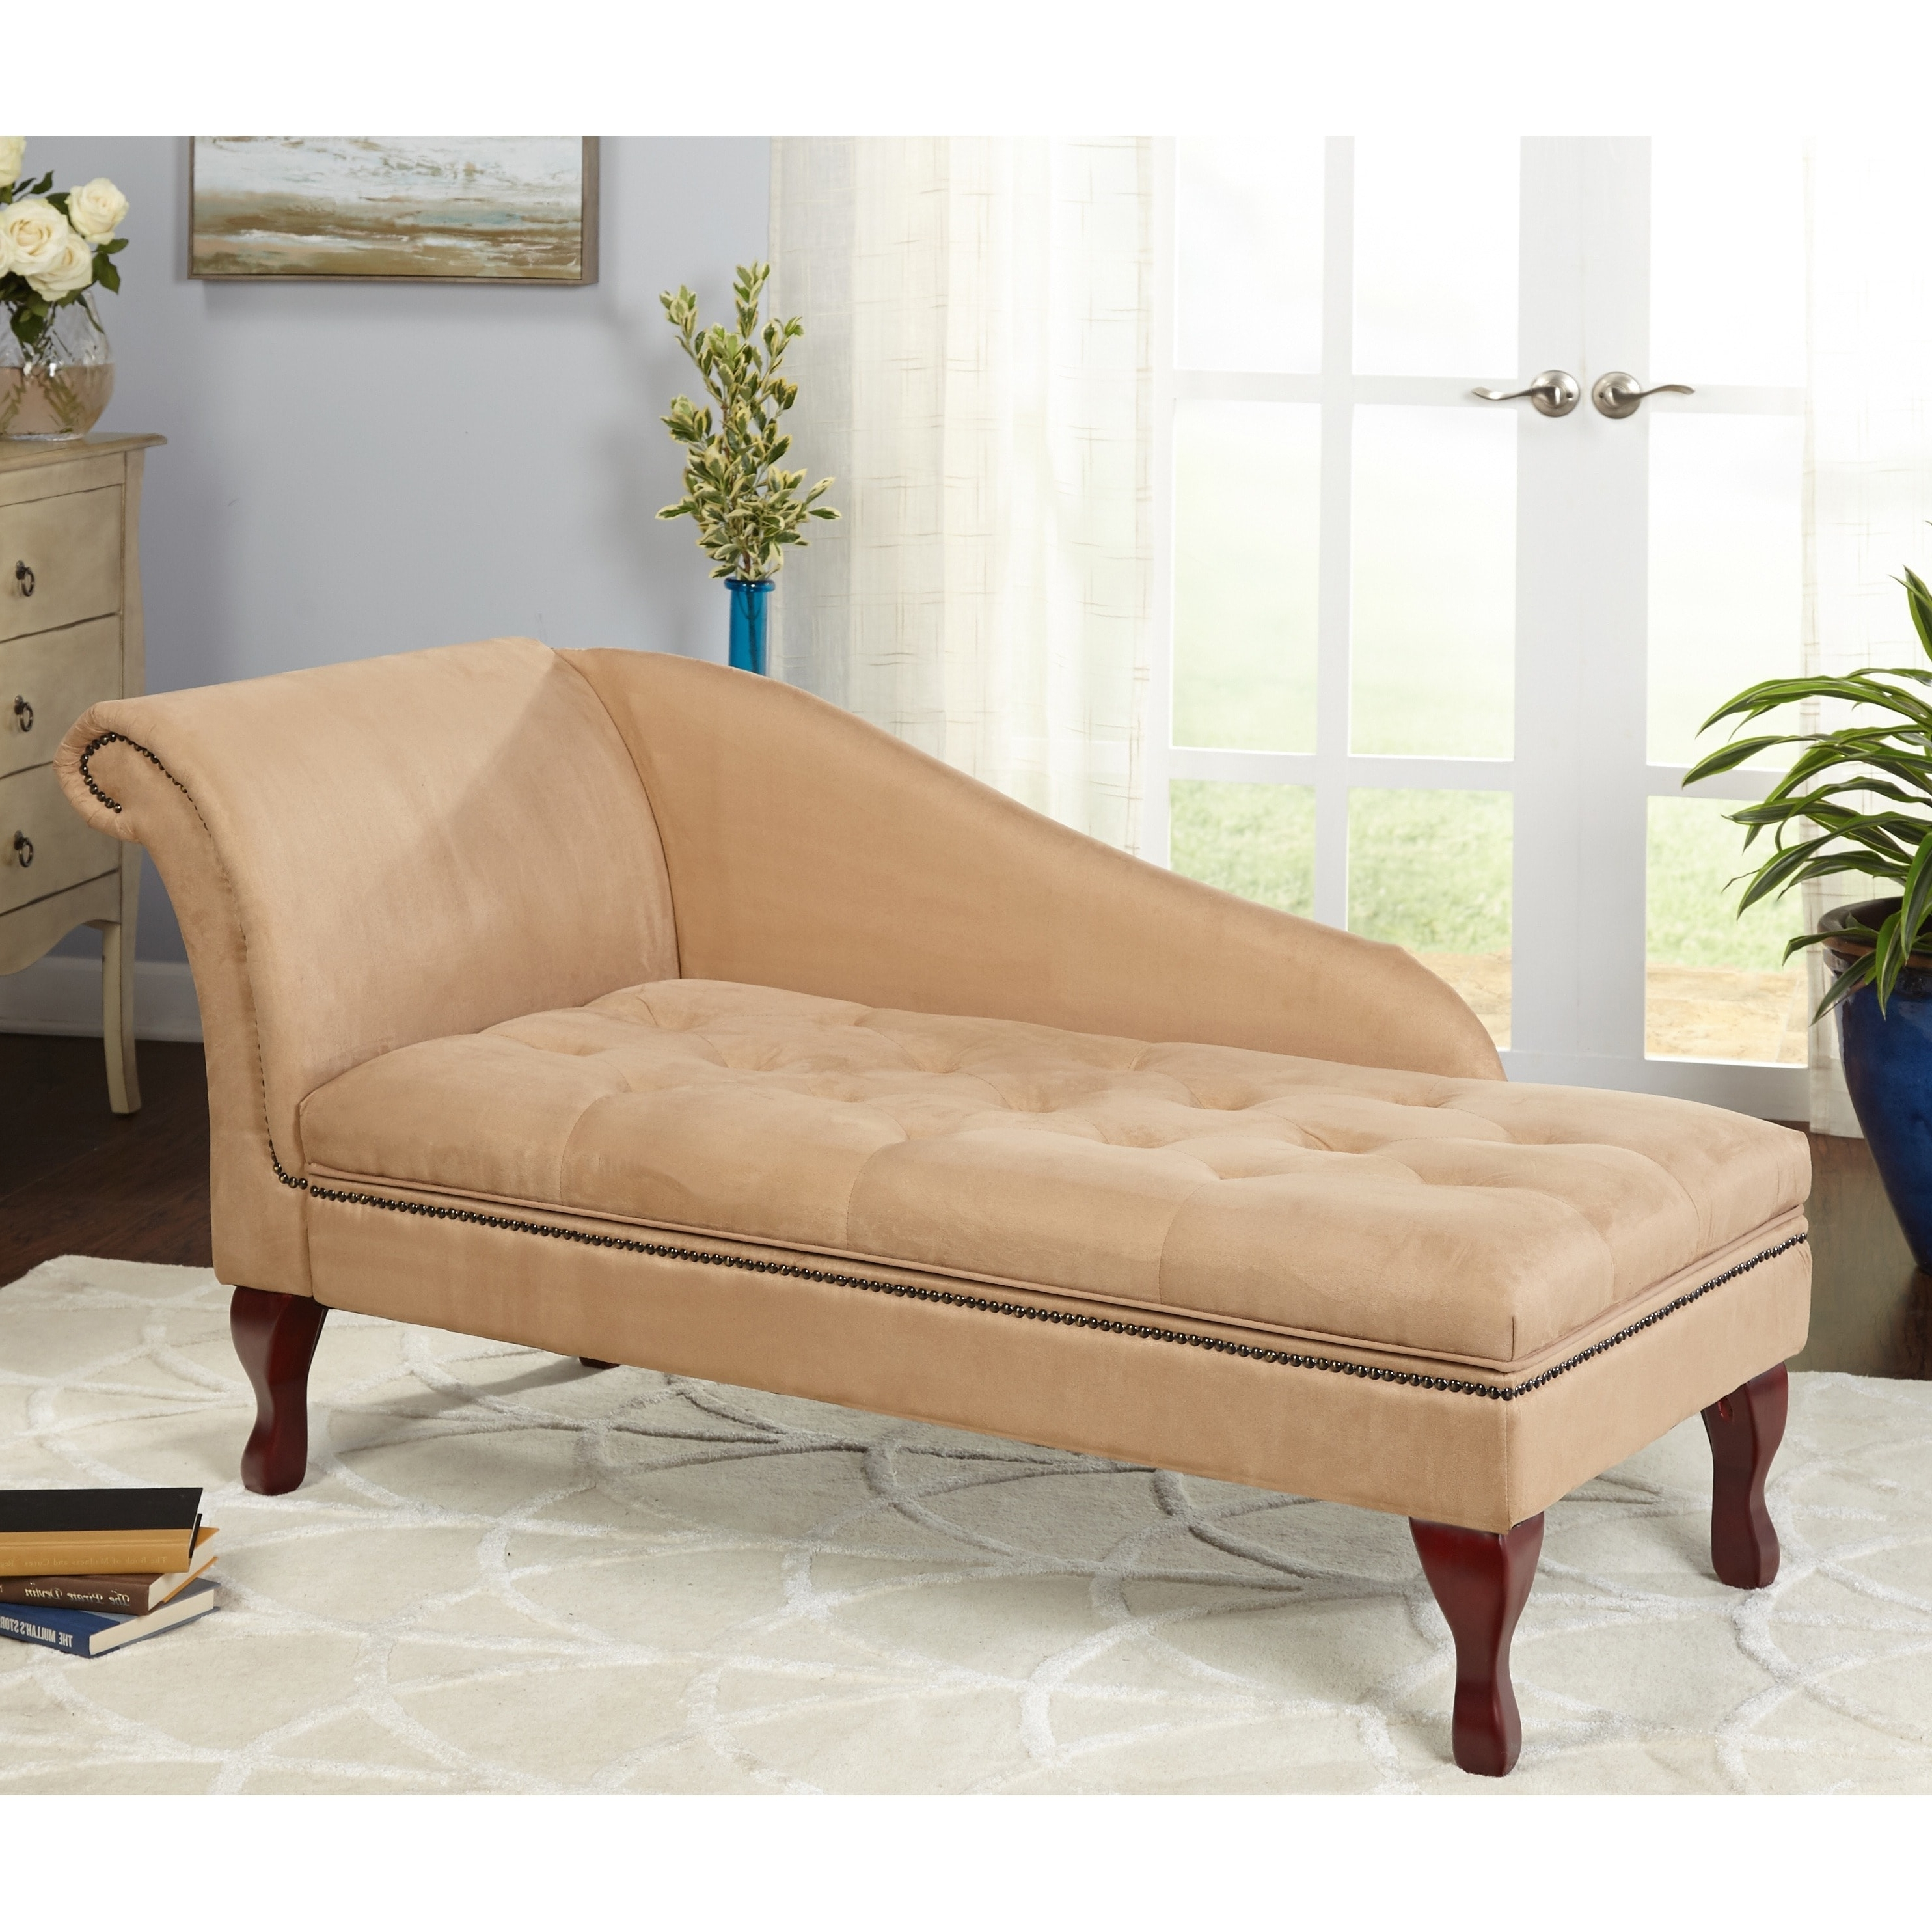 Latest Simple Living Tan Chaise Lounge With Storage – N/a – Free Shipping Within Overstock Chaises (View 10 of 15)